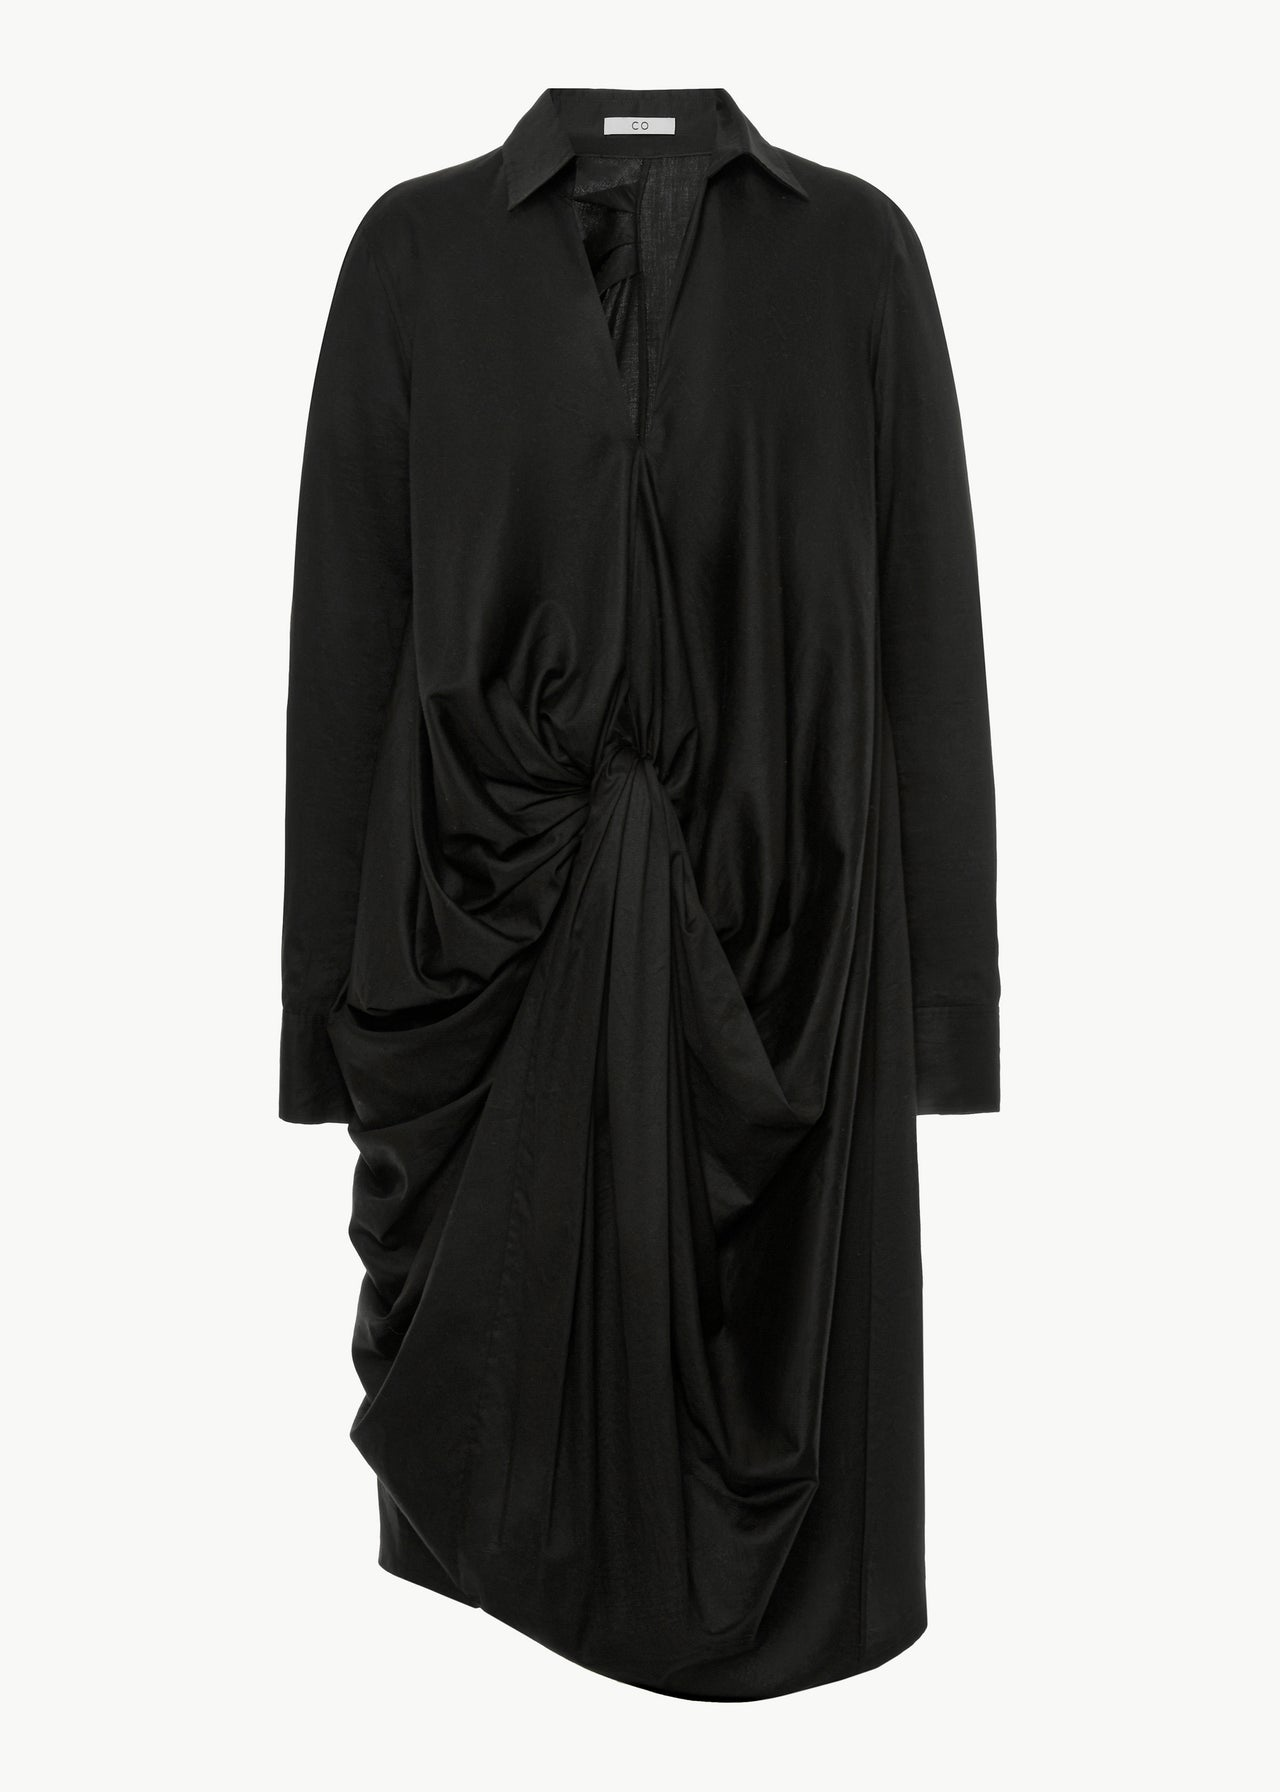 Knotted Shirtdress in Japanese Cotton - Black